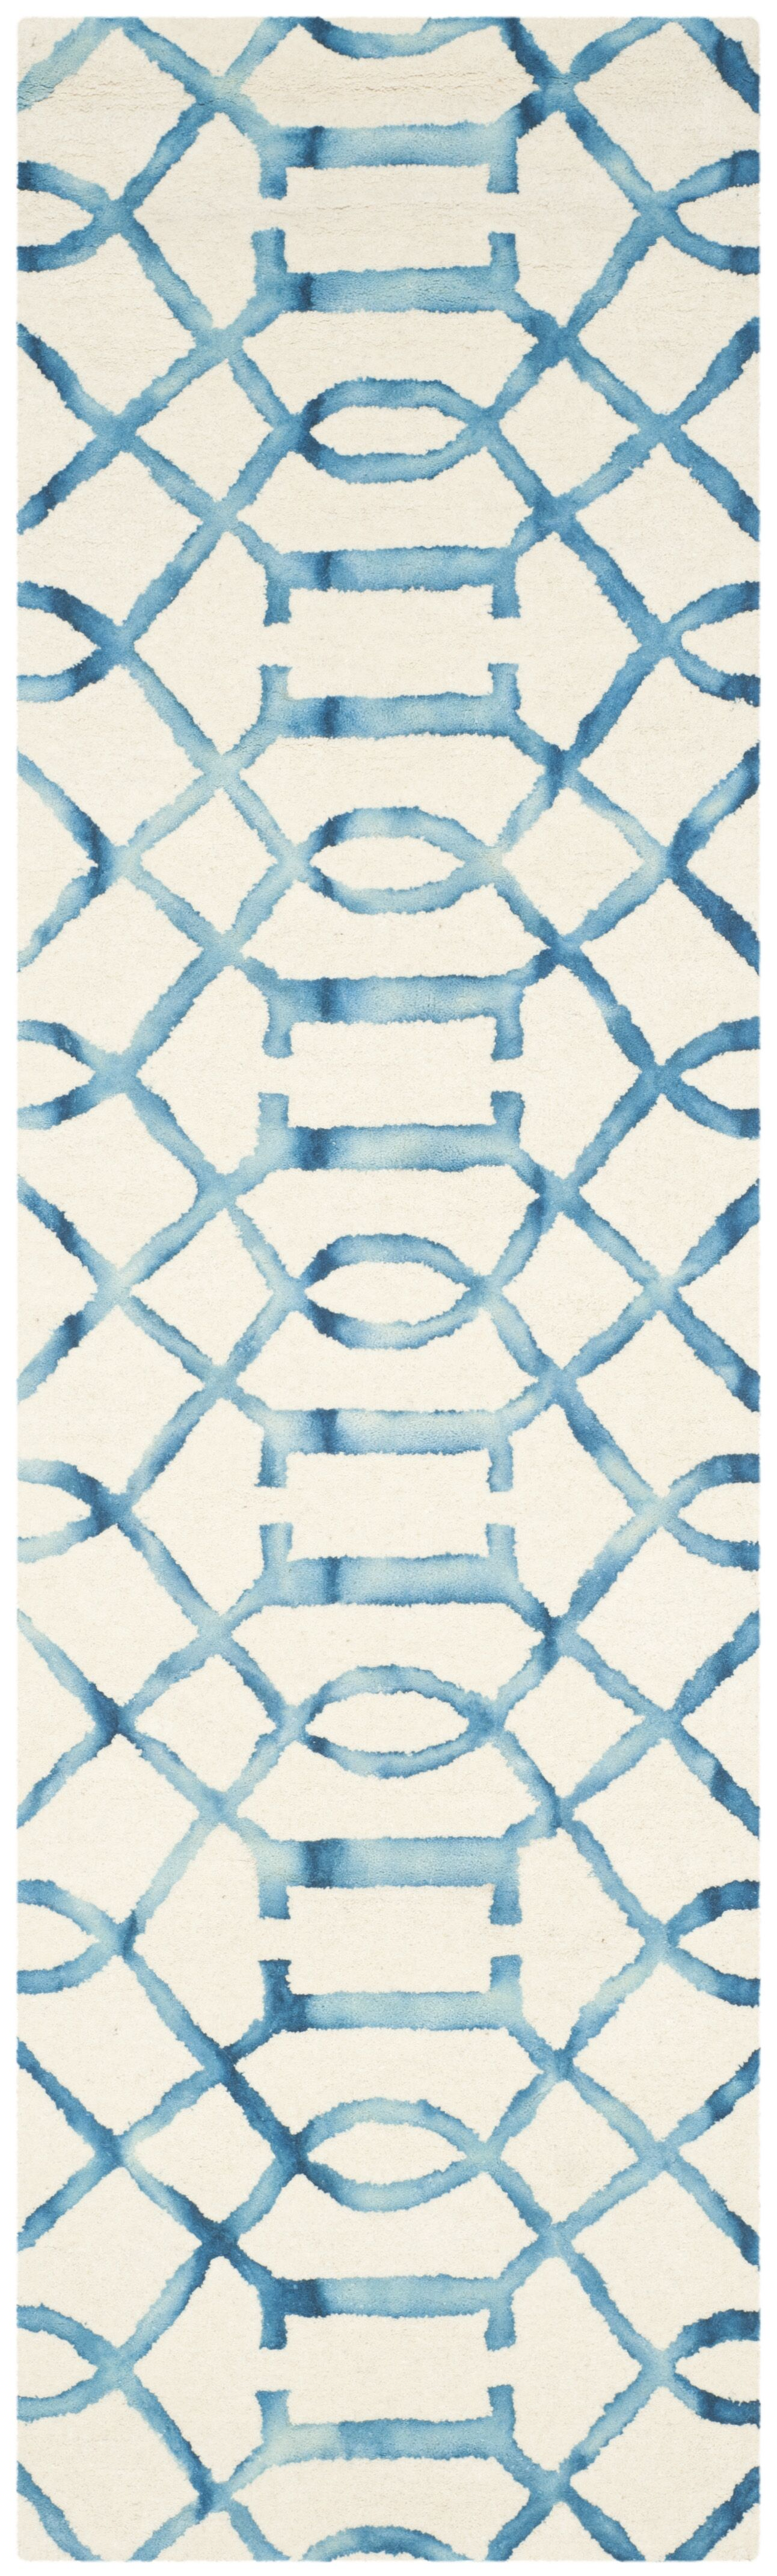 Braylee Ivory/Turquoise Area Rug Rug Size: Runner 2'3